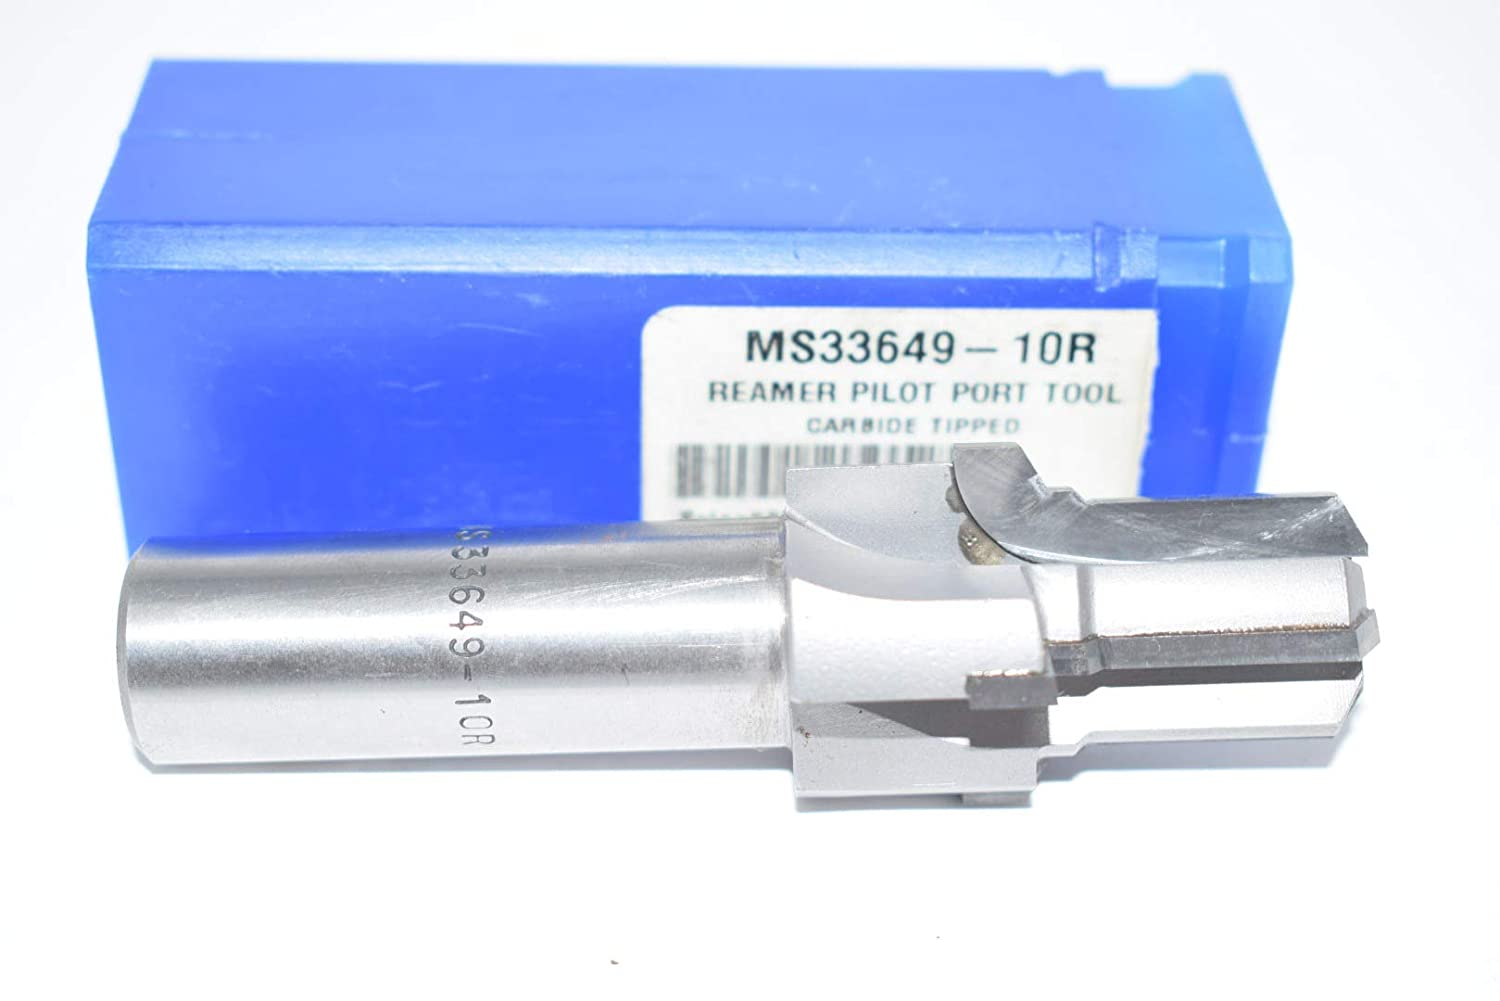 Port Tool,MS33649,Reamer,7//8-14 UNJF SCIENTIFIC CUTTING TOOLS MS33649-10R